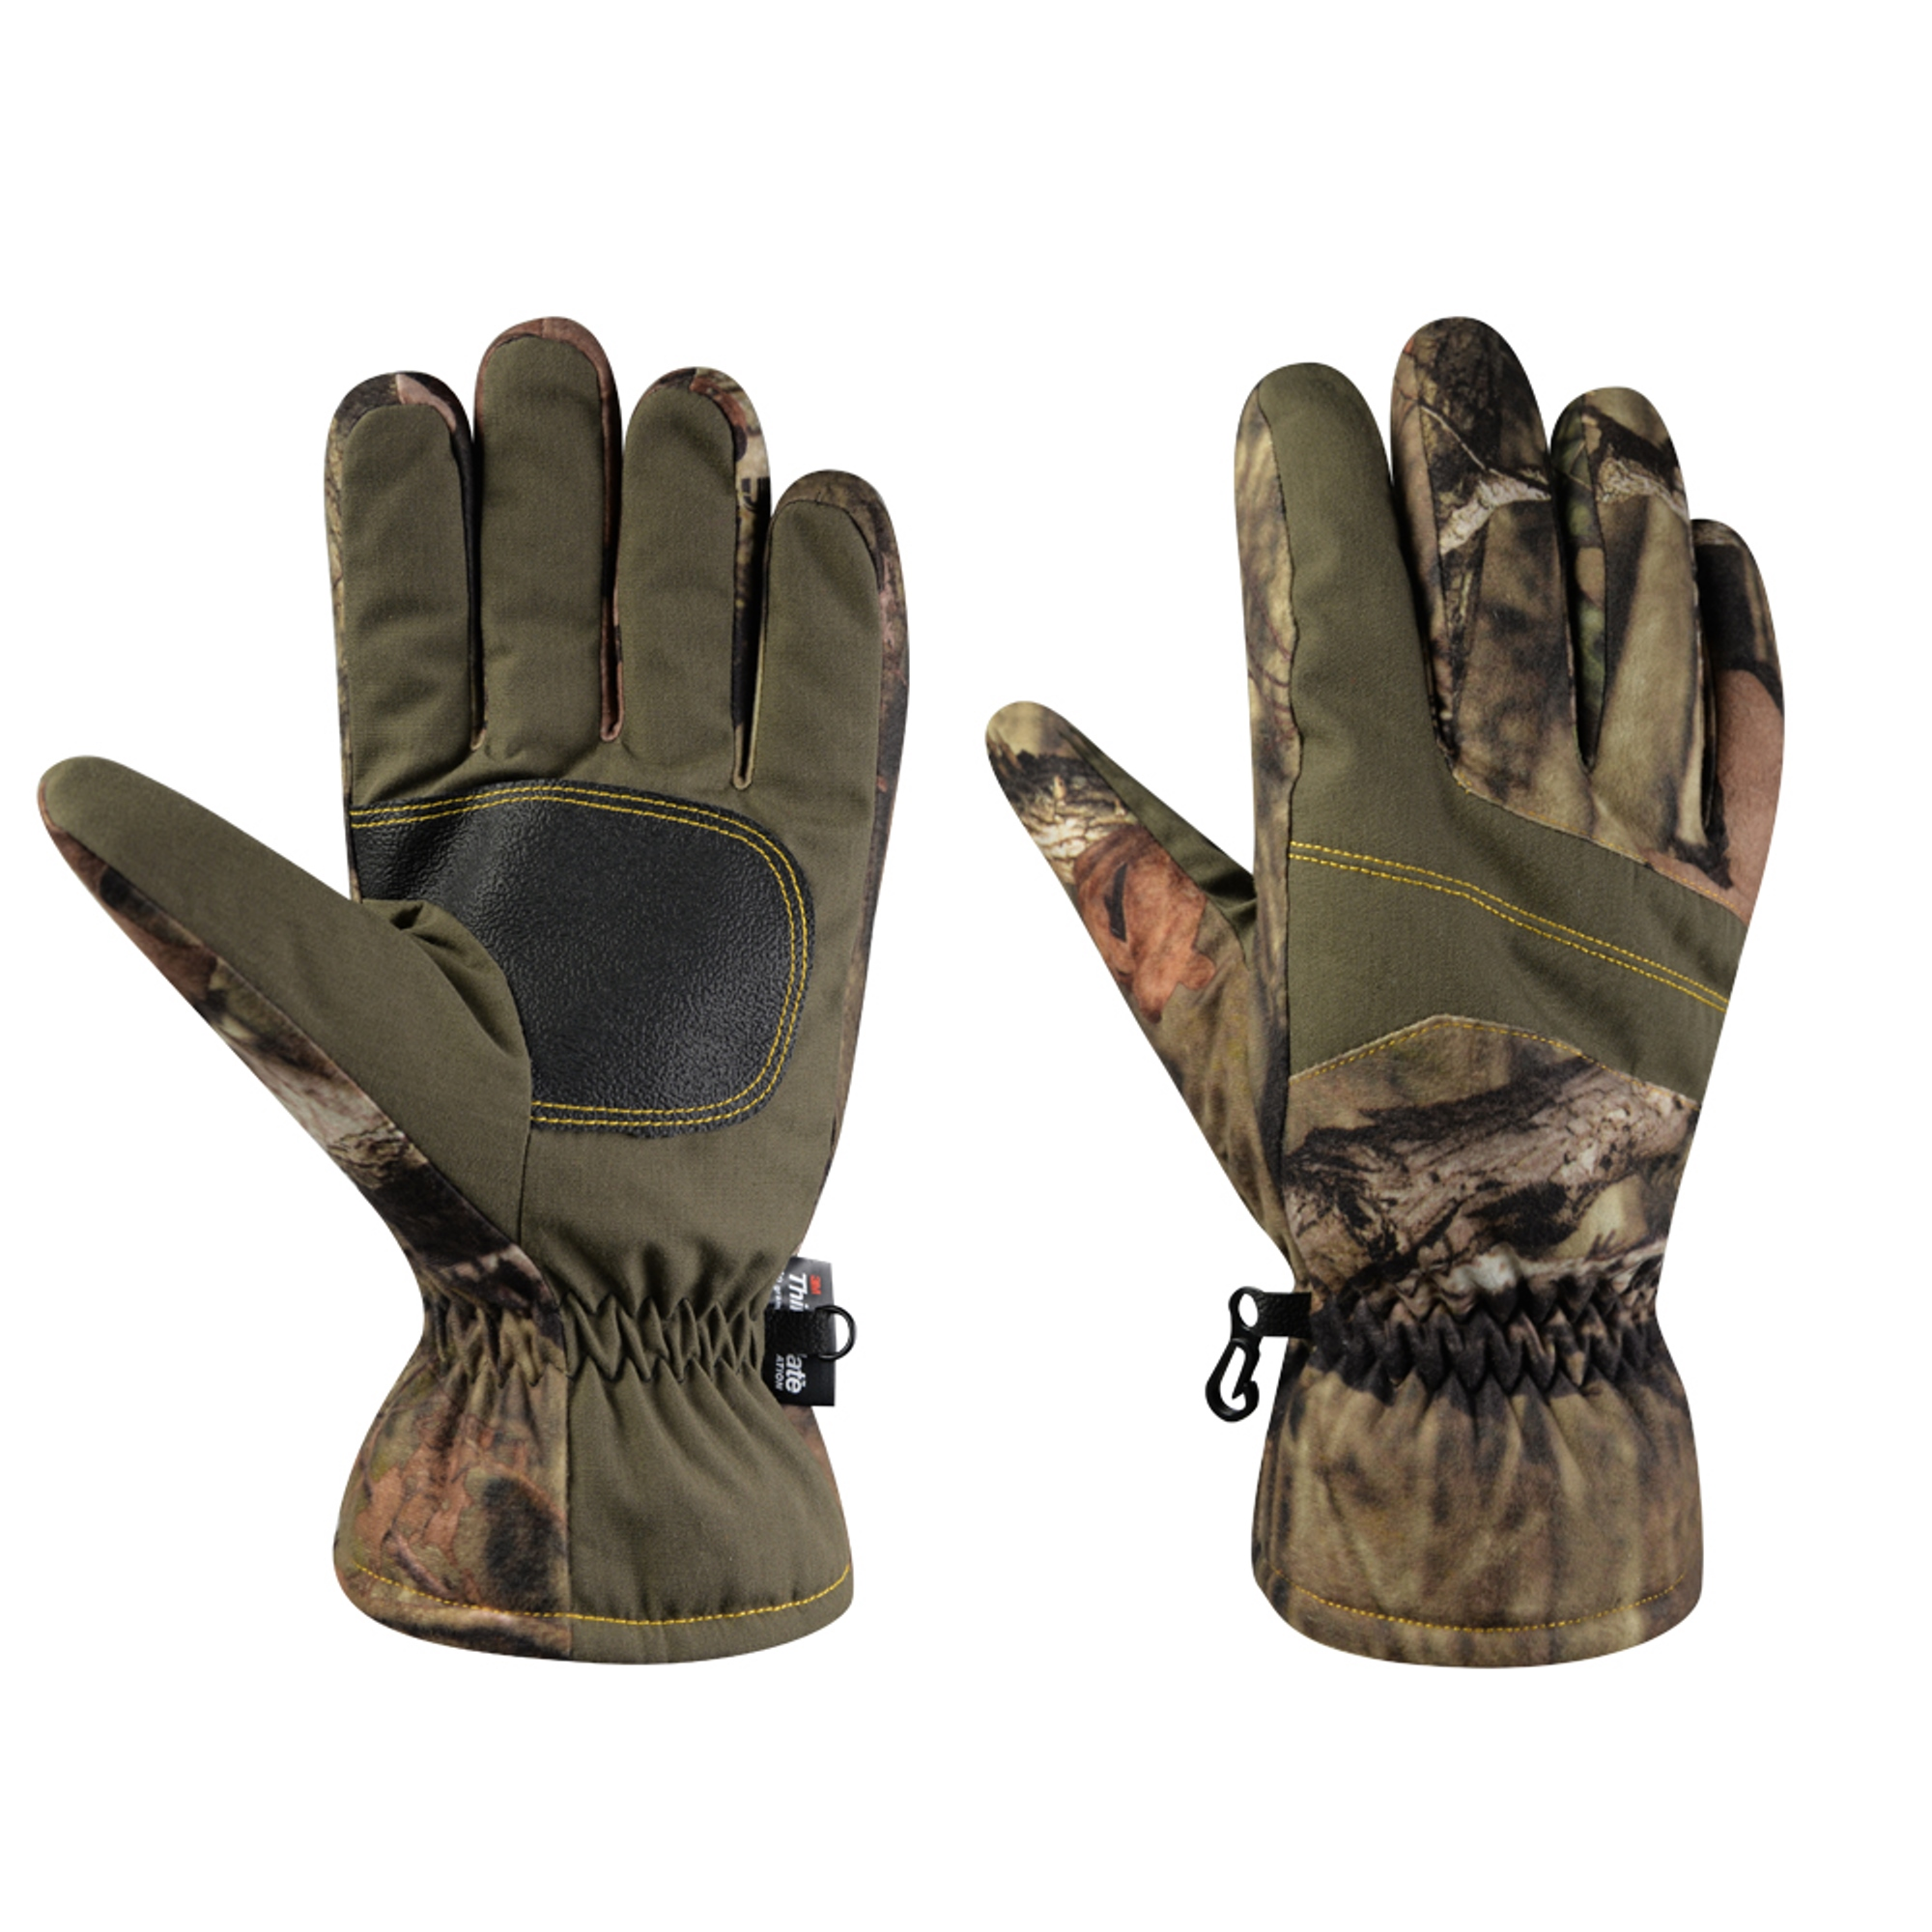 Hunting Glove im test